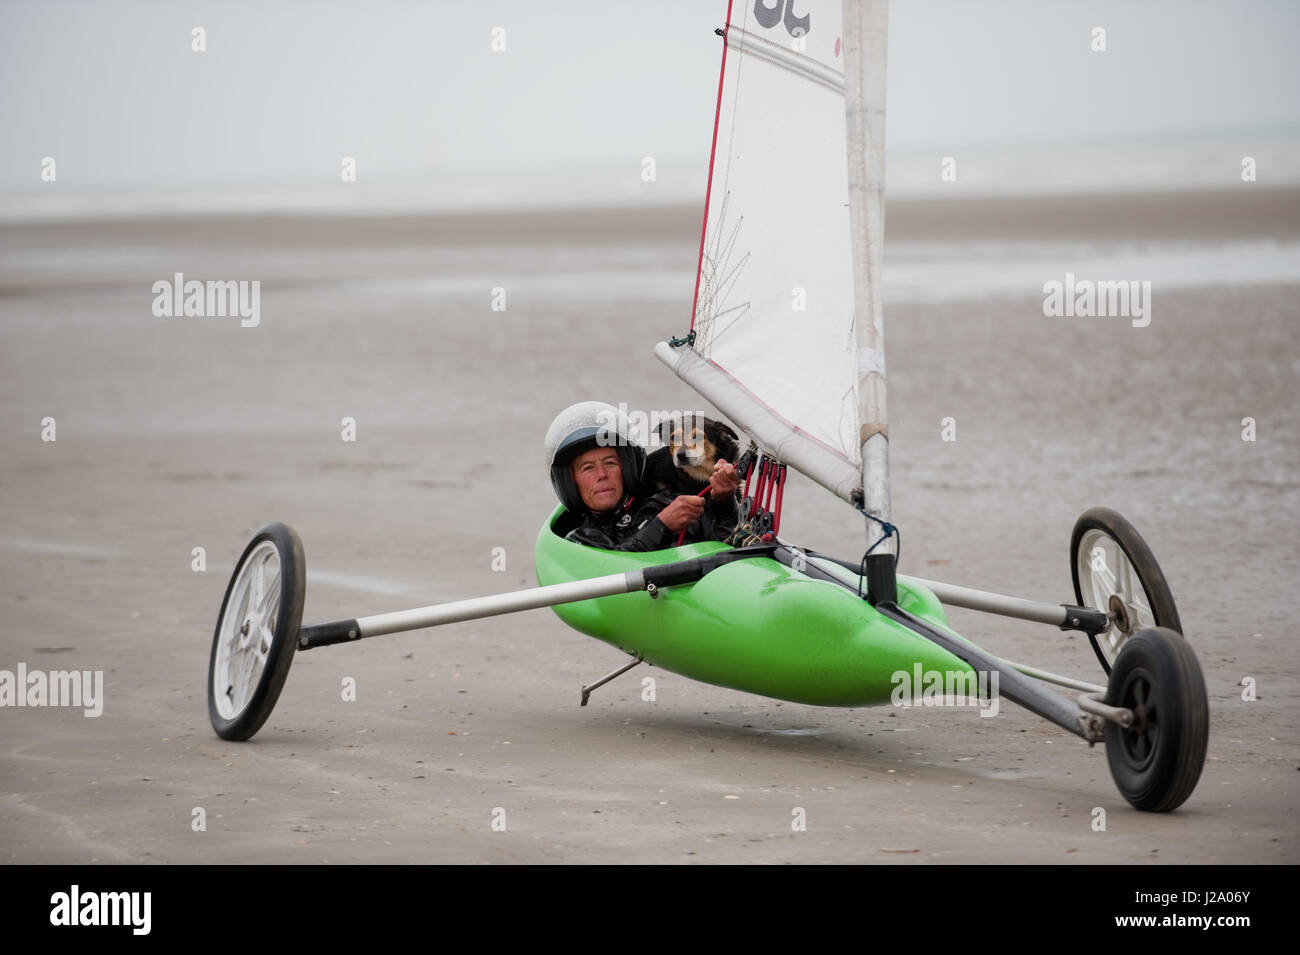 Land sailing, also known as sand yachting or land yachting, is the act of moving across land in a wheeled vehicle - Stock Image